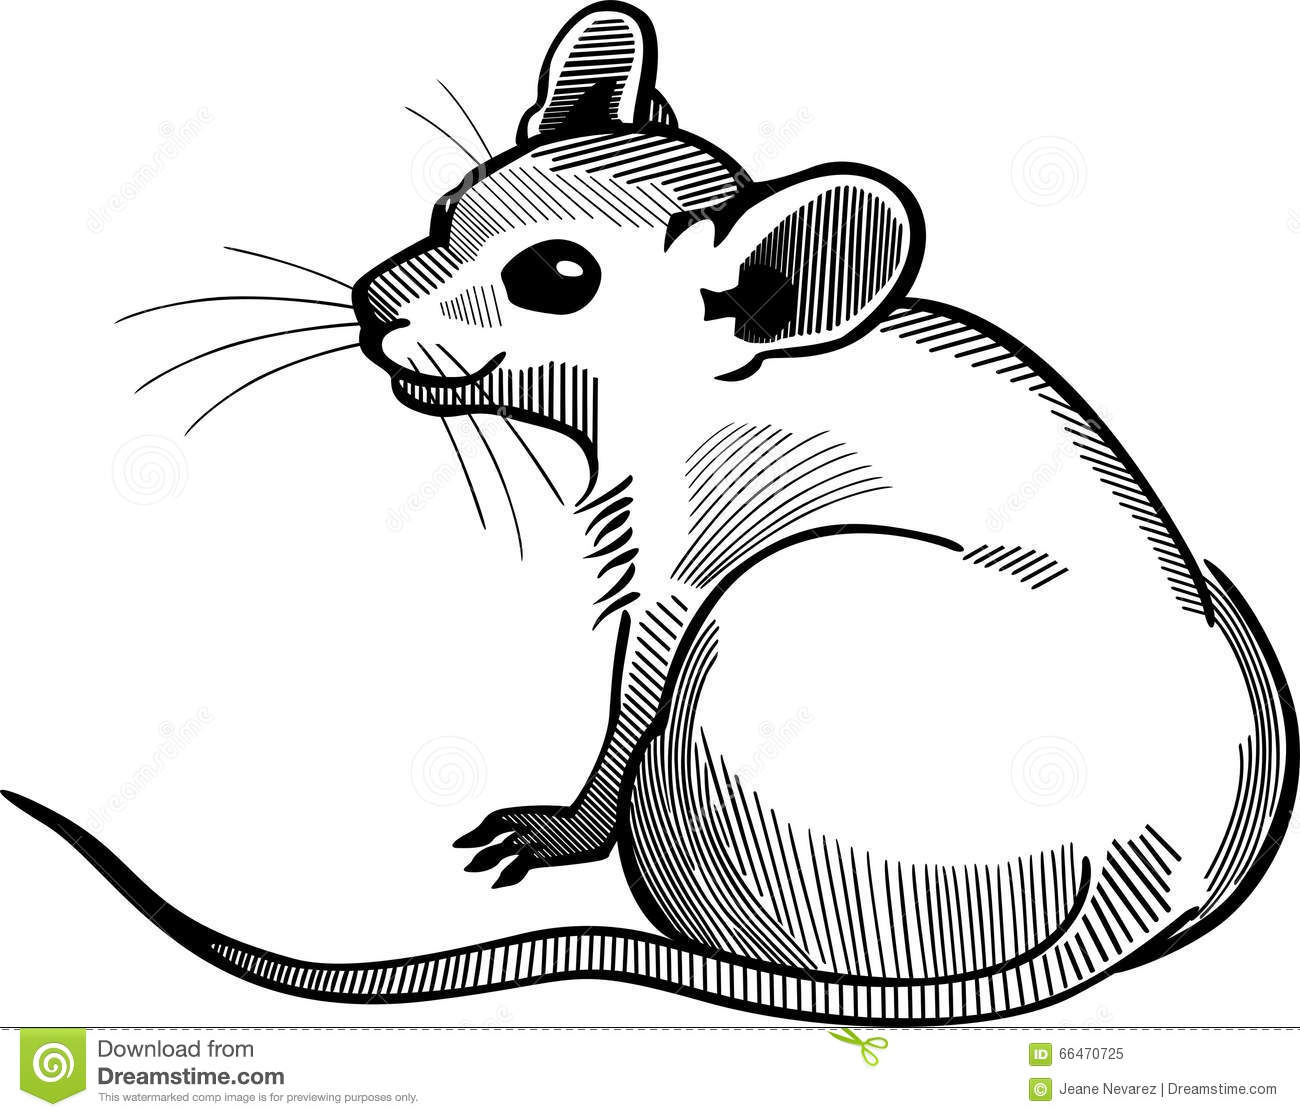 Drawing Lines With Mouse In Java : Mouse sitting stock vector illustration of white tail